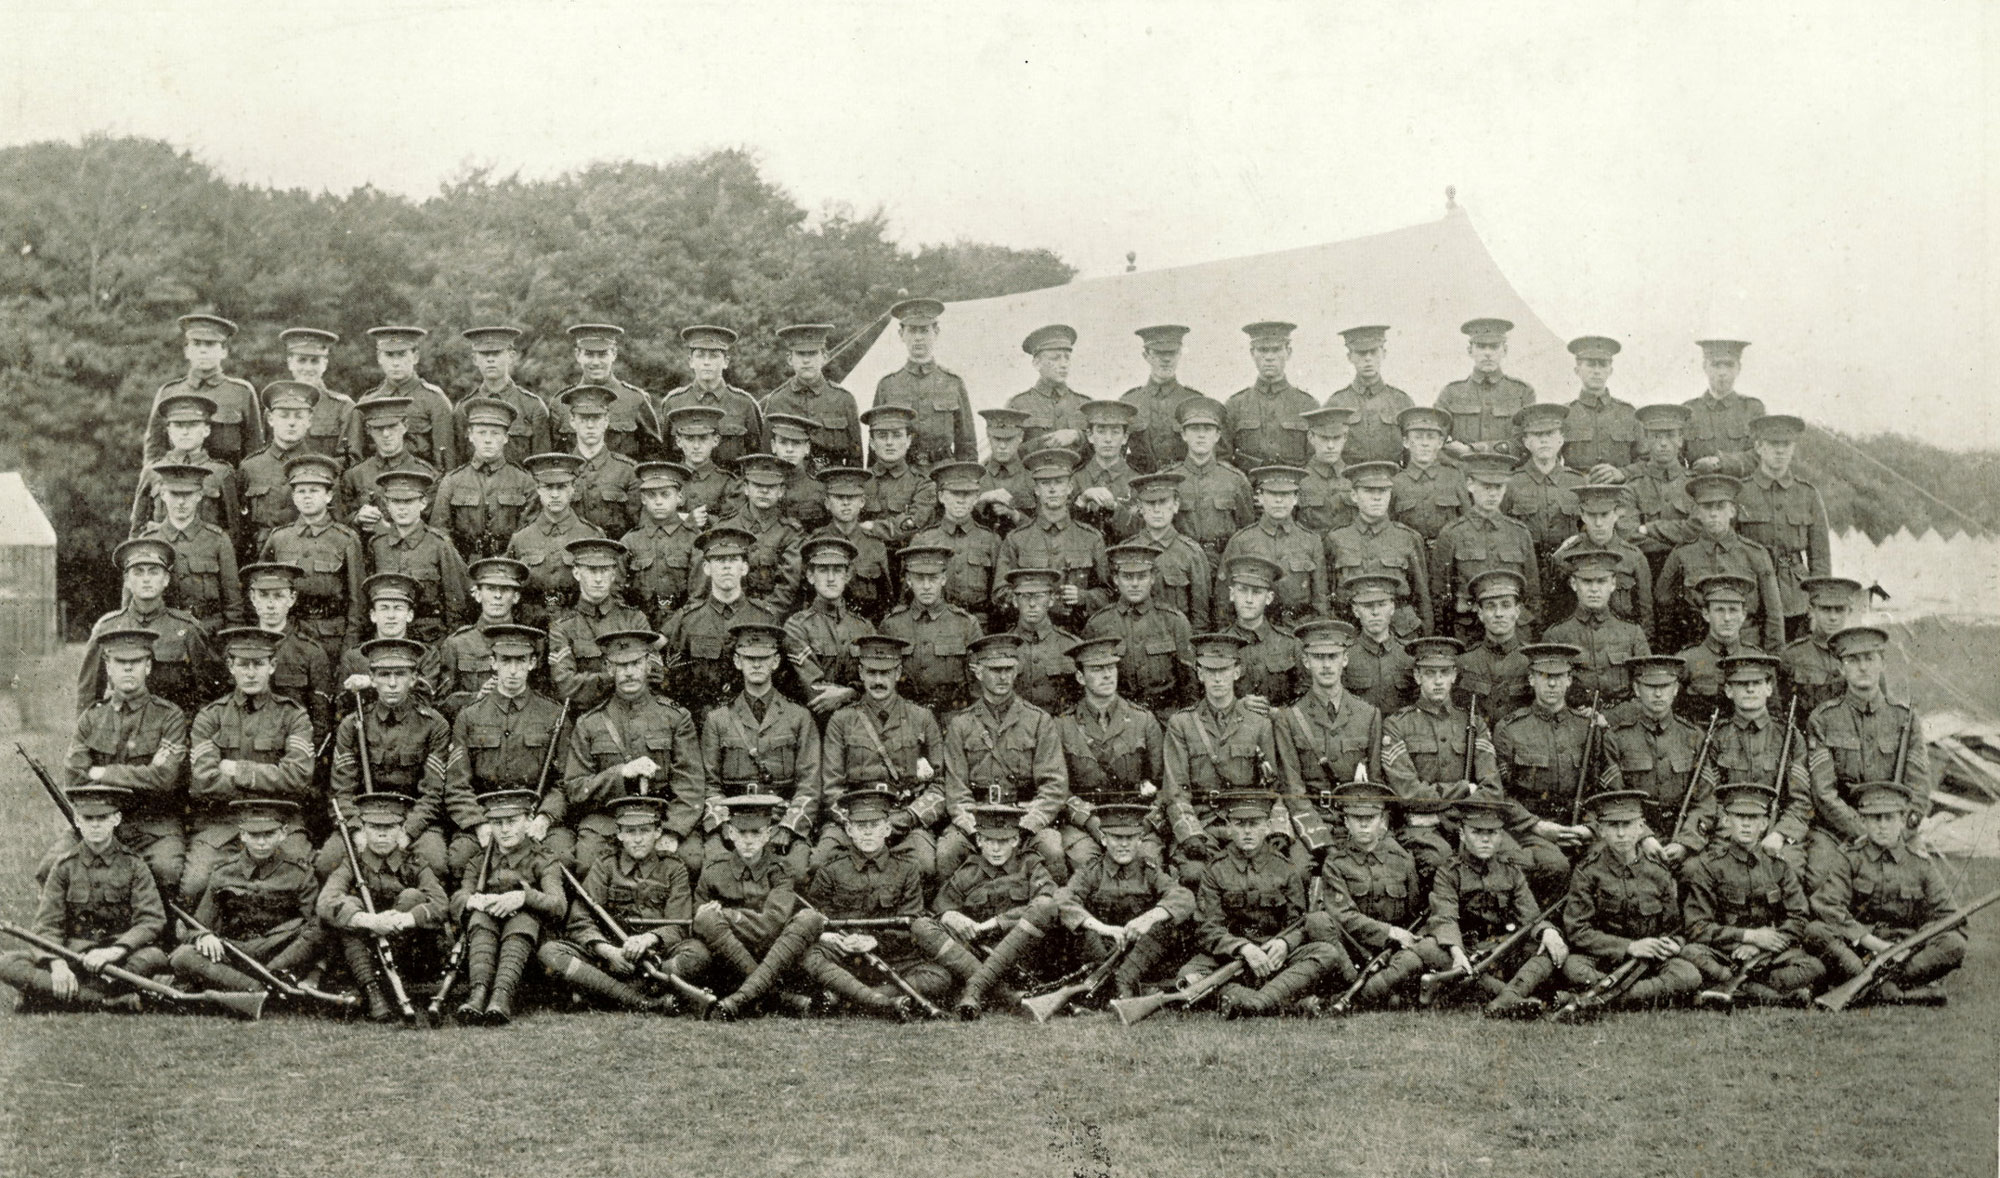 Cranleigh School OTC pictured at Tidmworth Camp on August 3, 1914, the day before war broke out